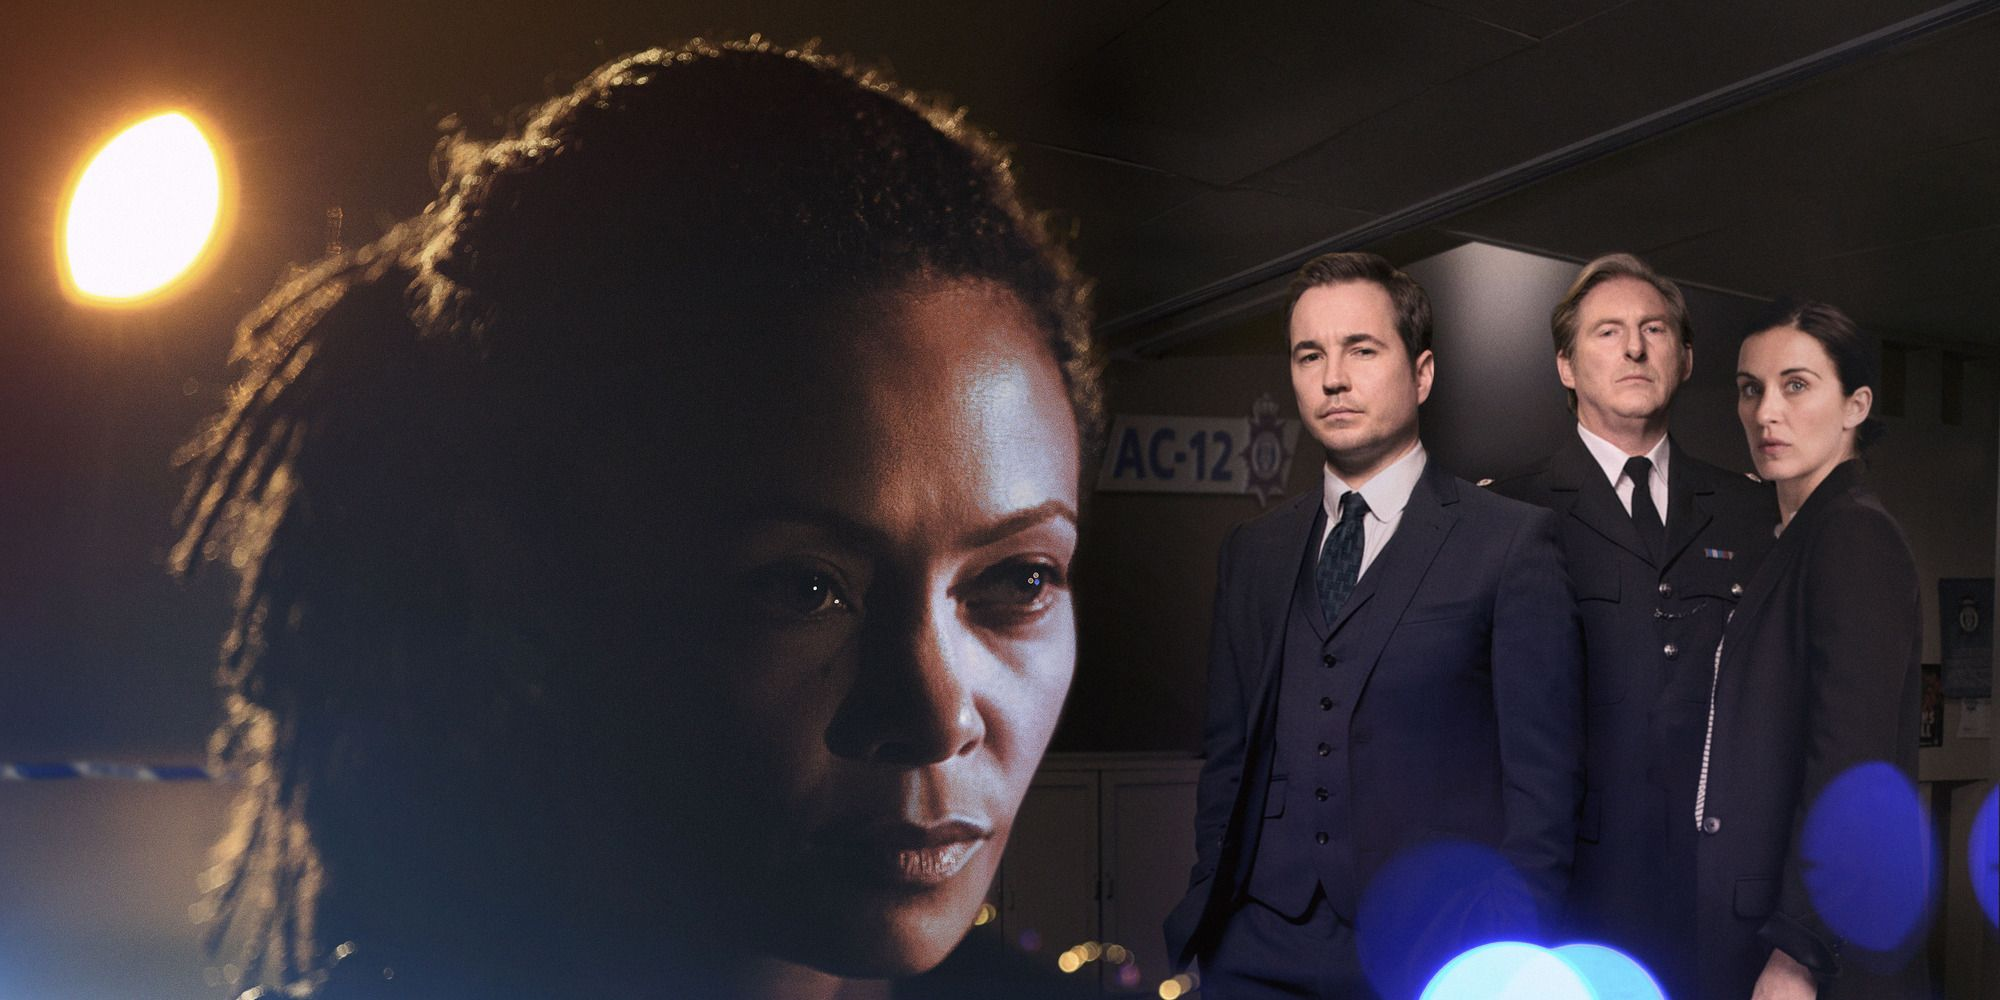 'Line of Duty' series 4 teaser art